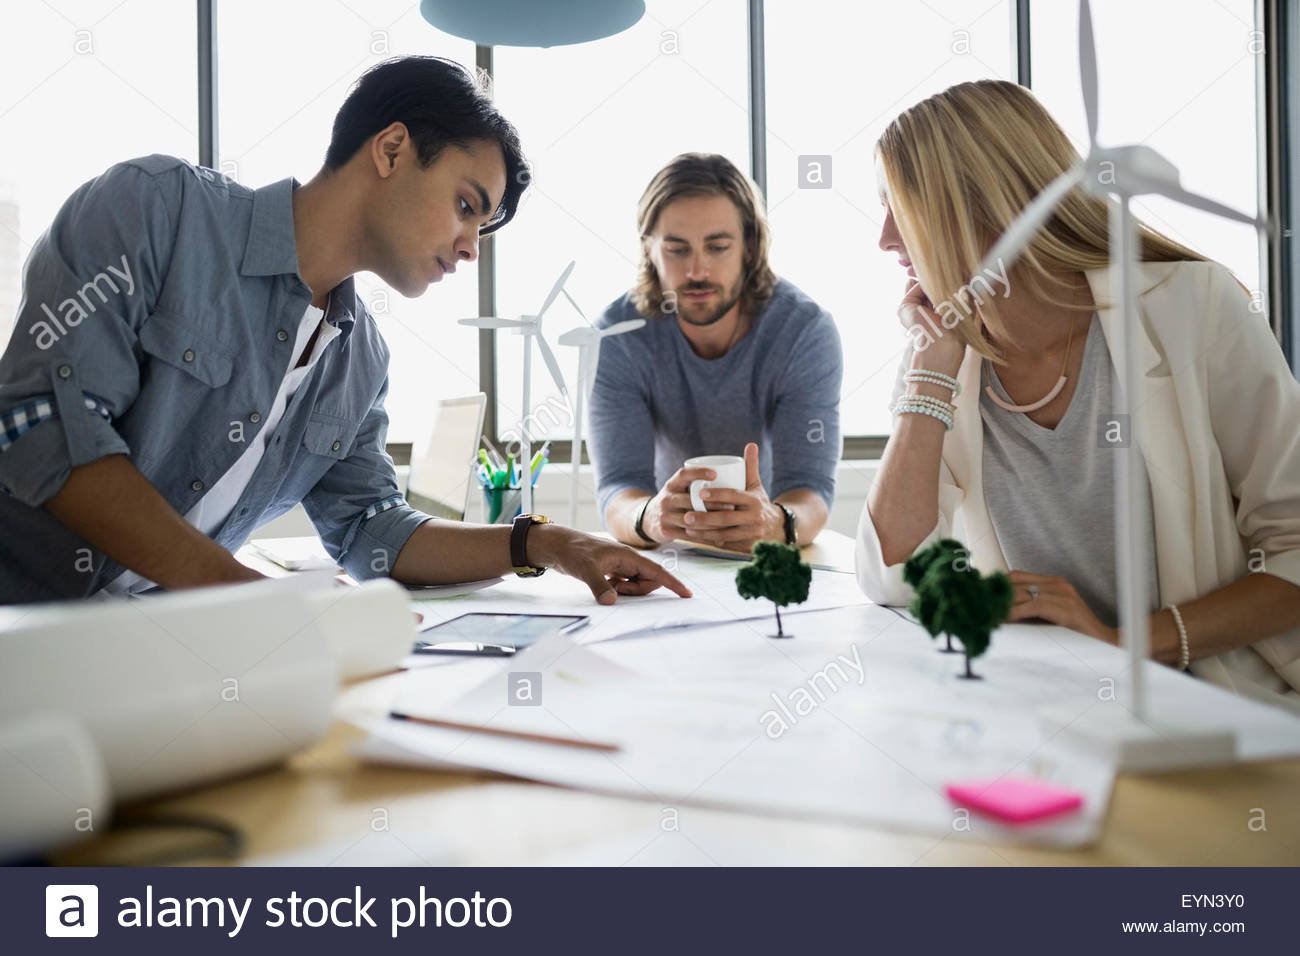 Architects discussing blueprints in meeting - Stock Image